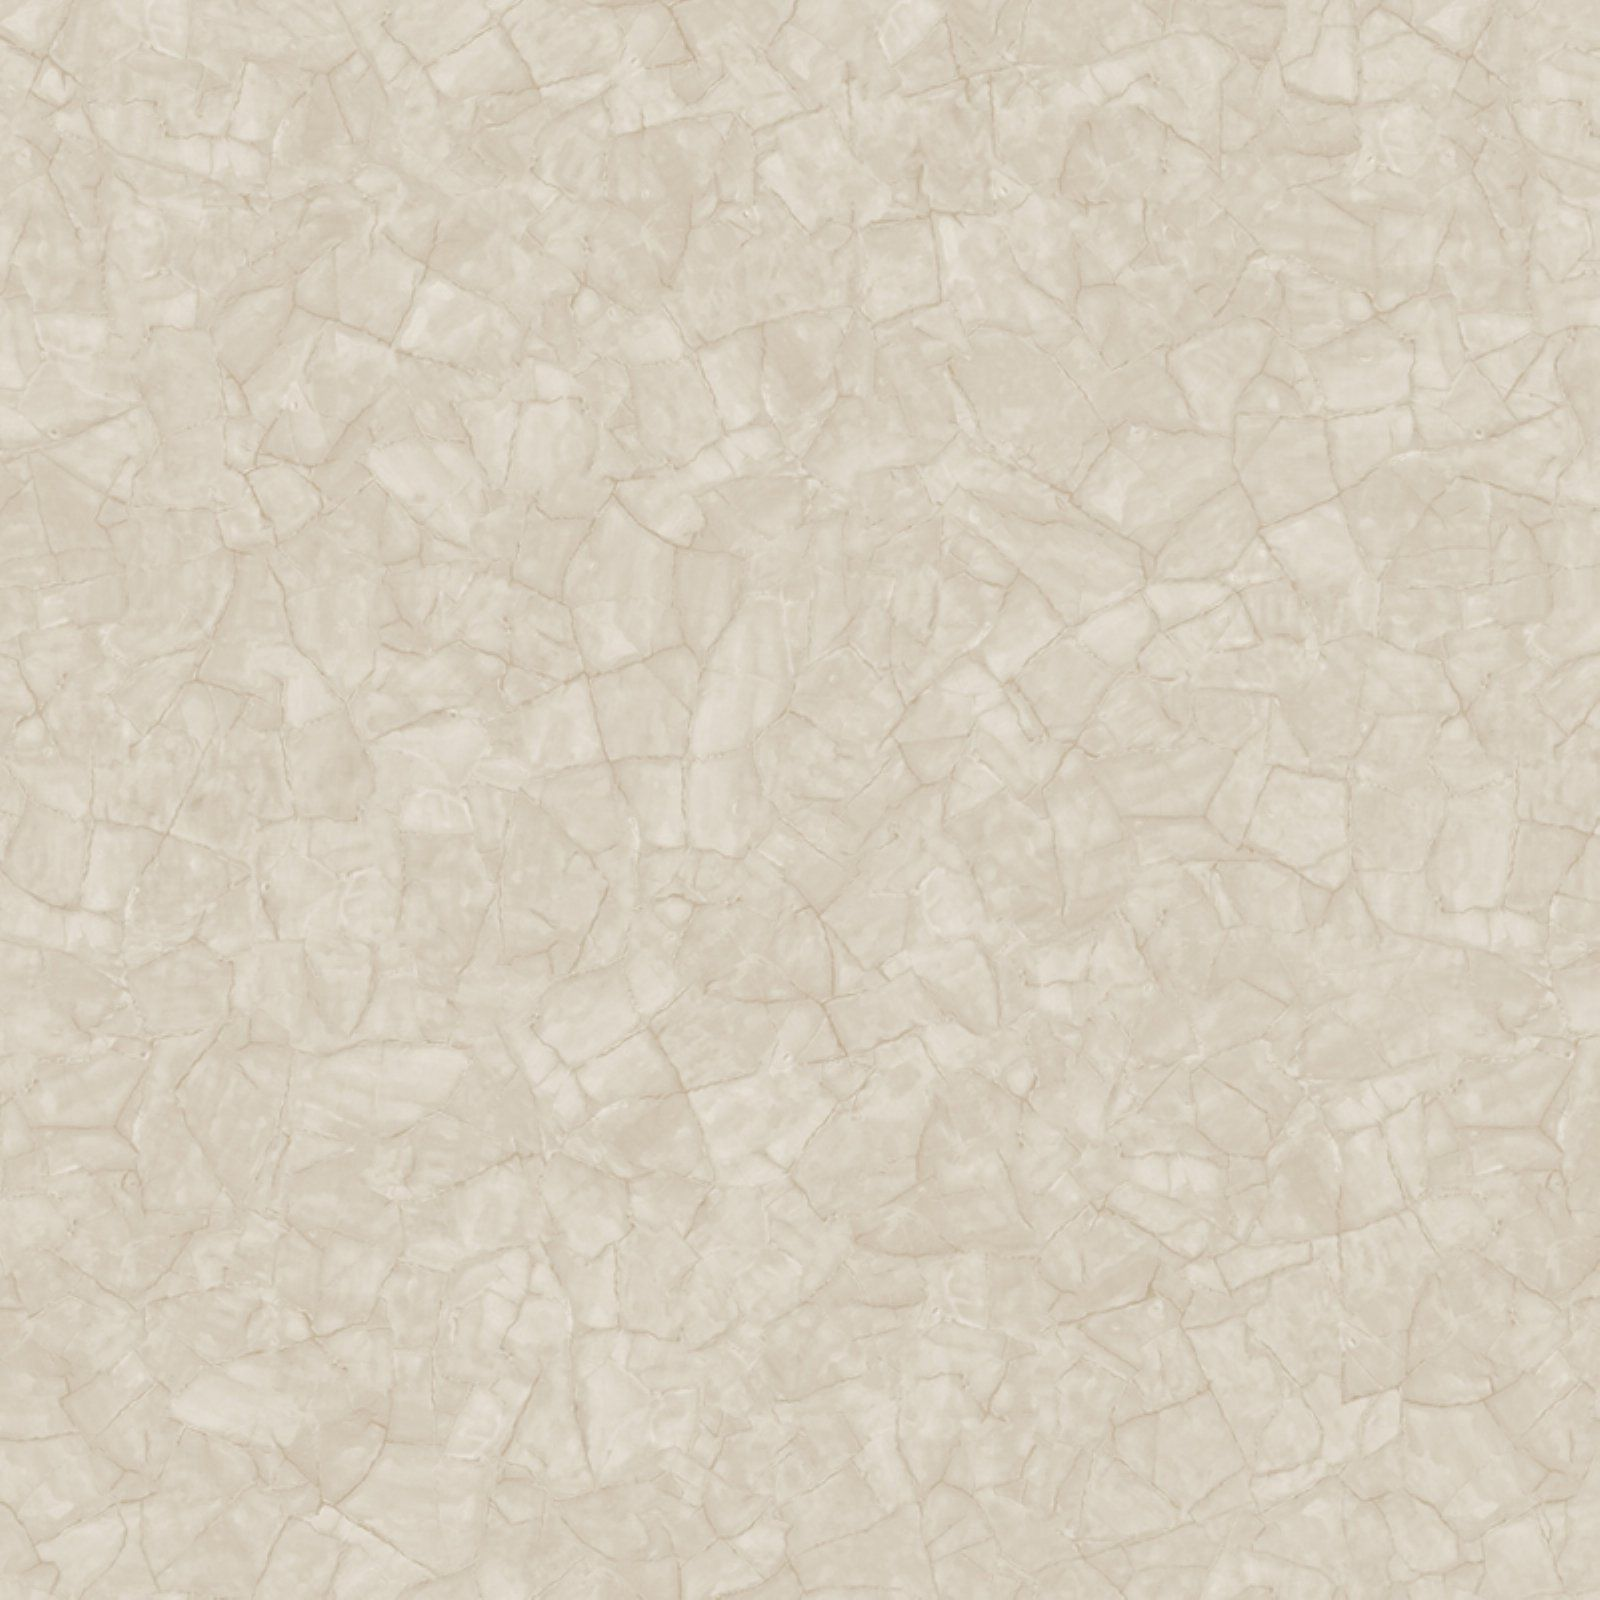 Patty Madden Sabine Faux Stone Texture Wallpaper Silver